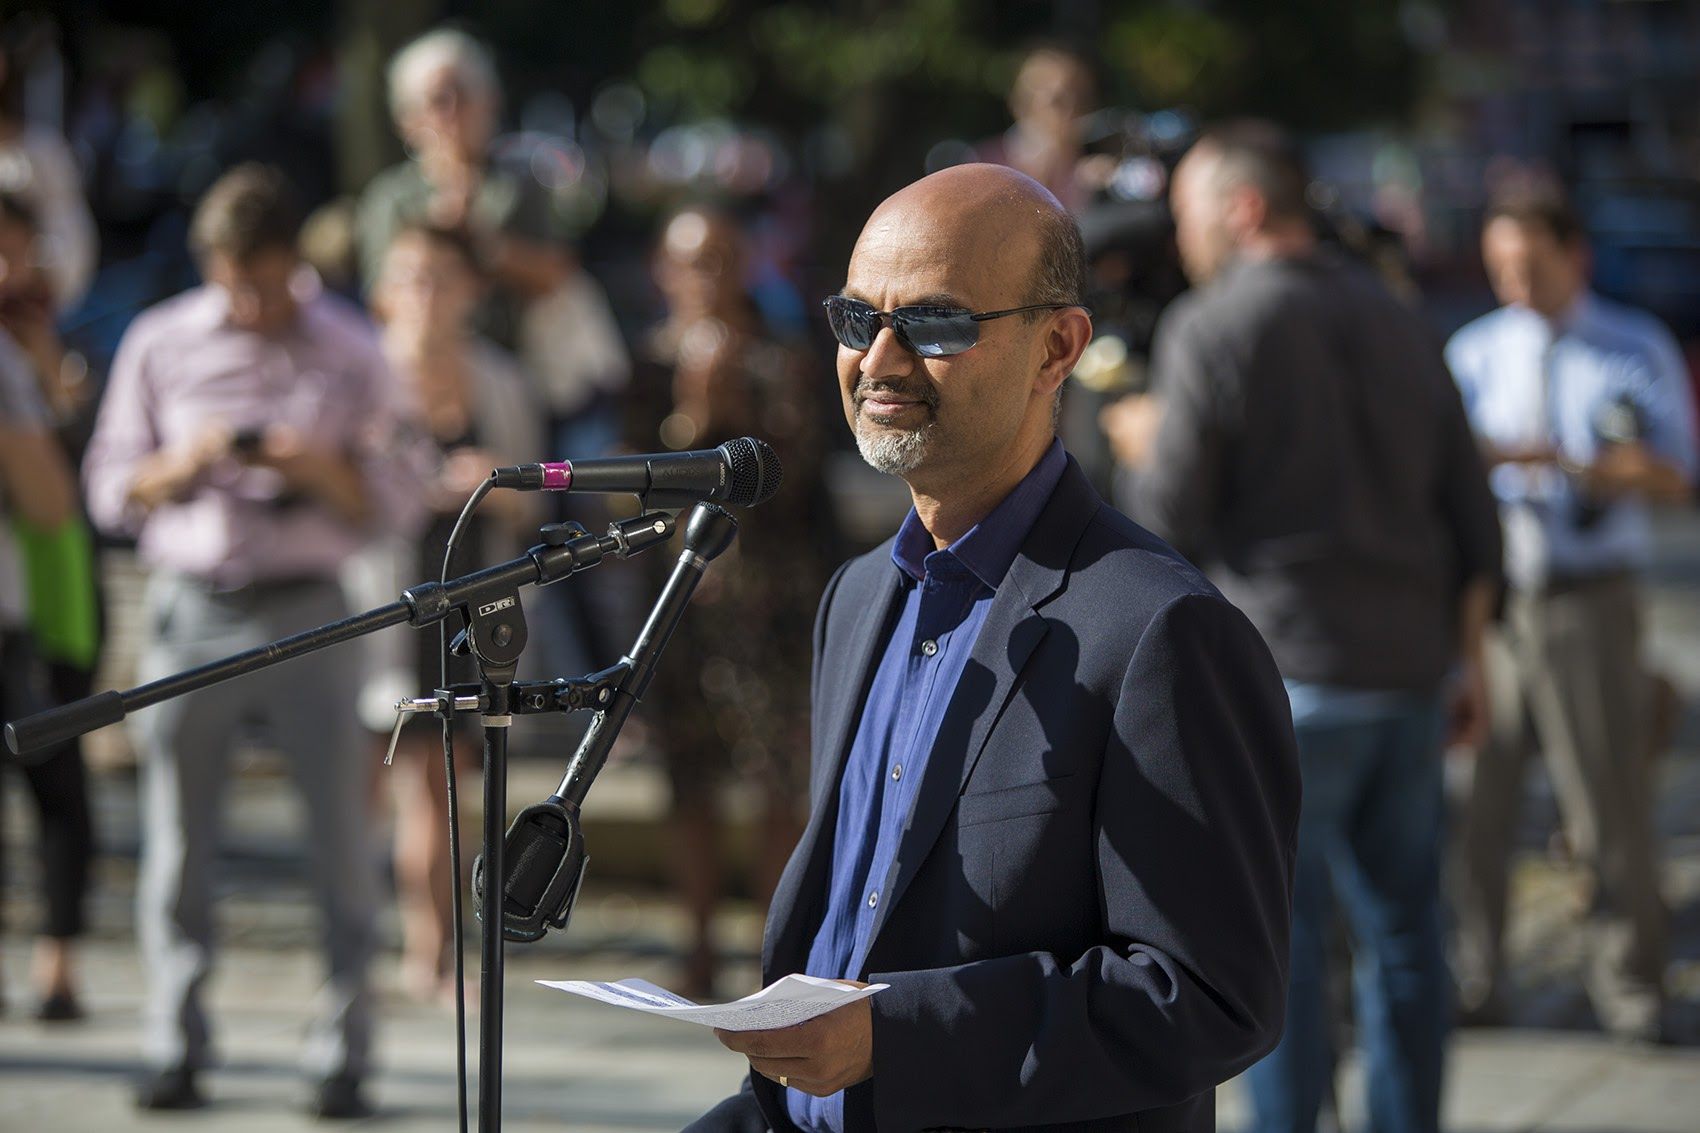 Carbonite CEO Mohamad Ali spoke during a rally in Faneuil Hall Tuesday against the Trump administration's decision to end DACA. (Jesse Costa/WBUR)